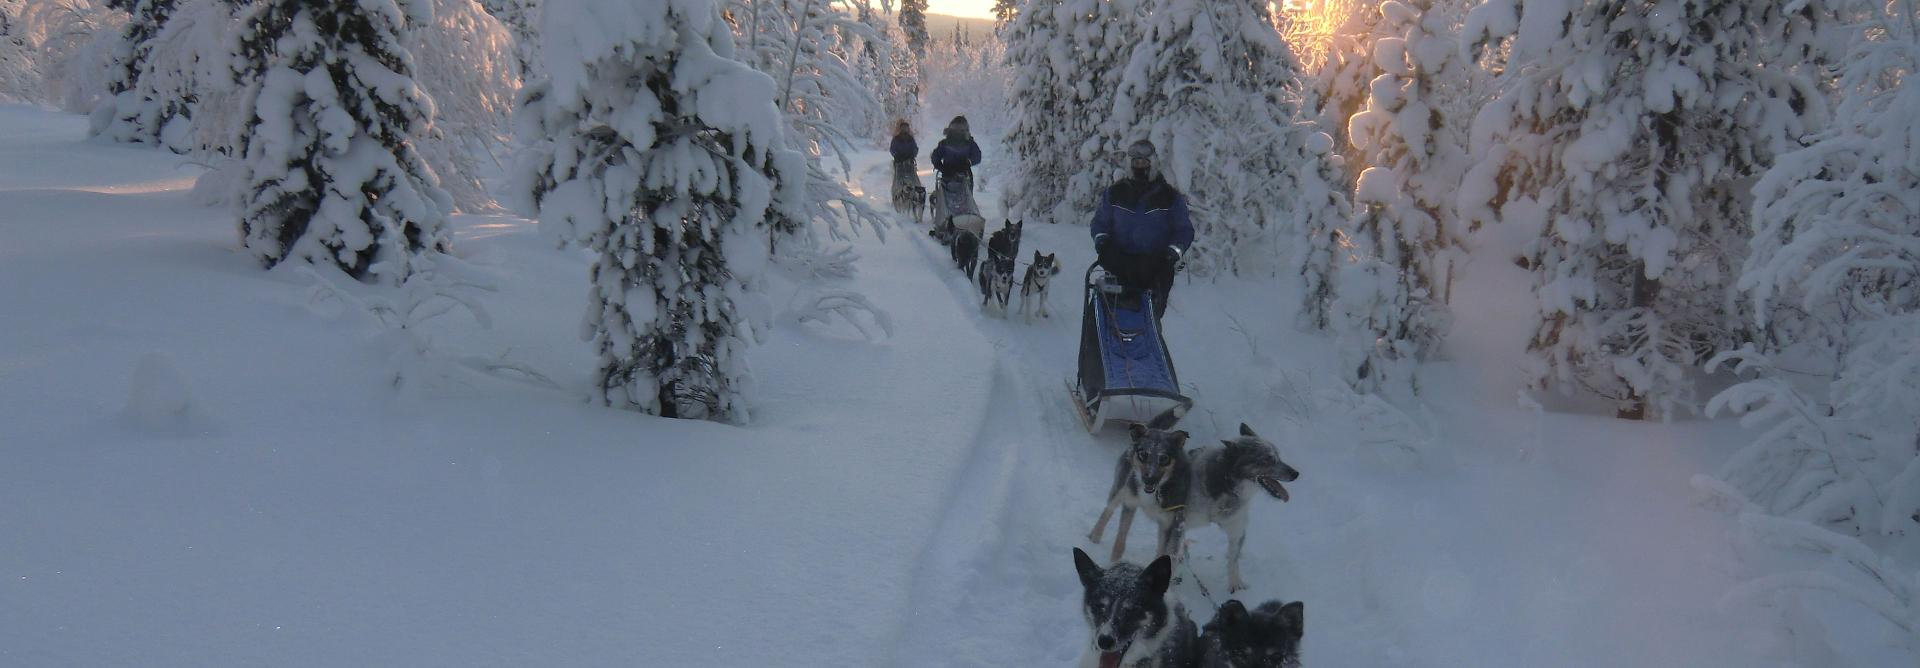 Dog Sledding Charity Challenge in Sweden